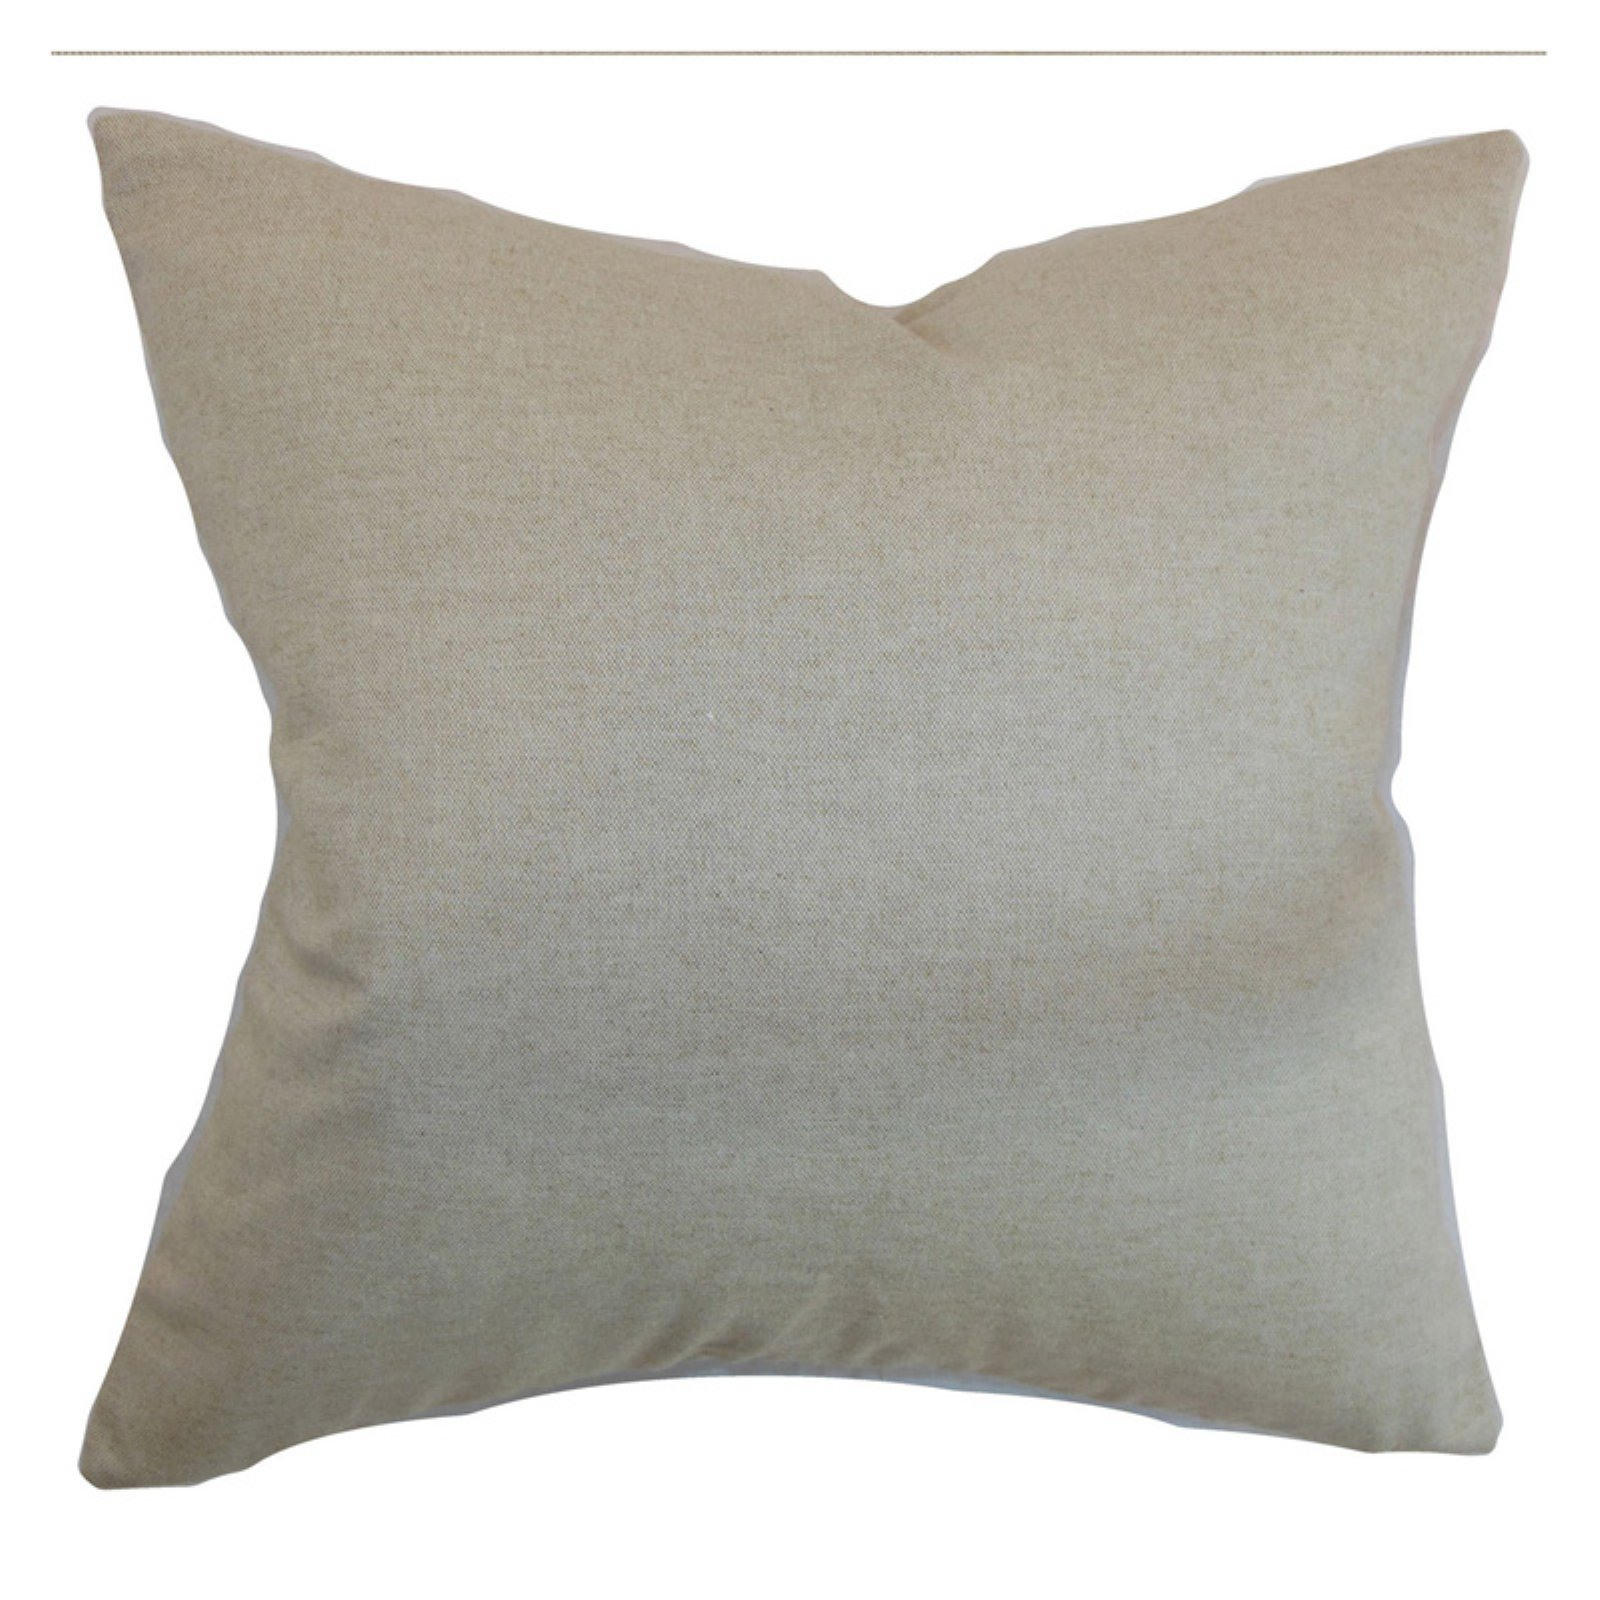 The Pillow Collection Napperby Solid Pillow - Linen